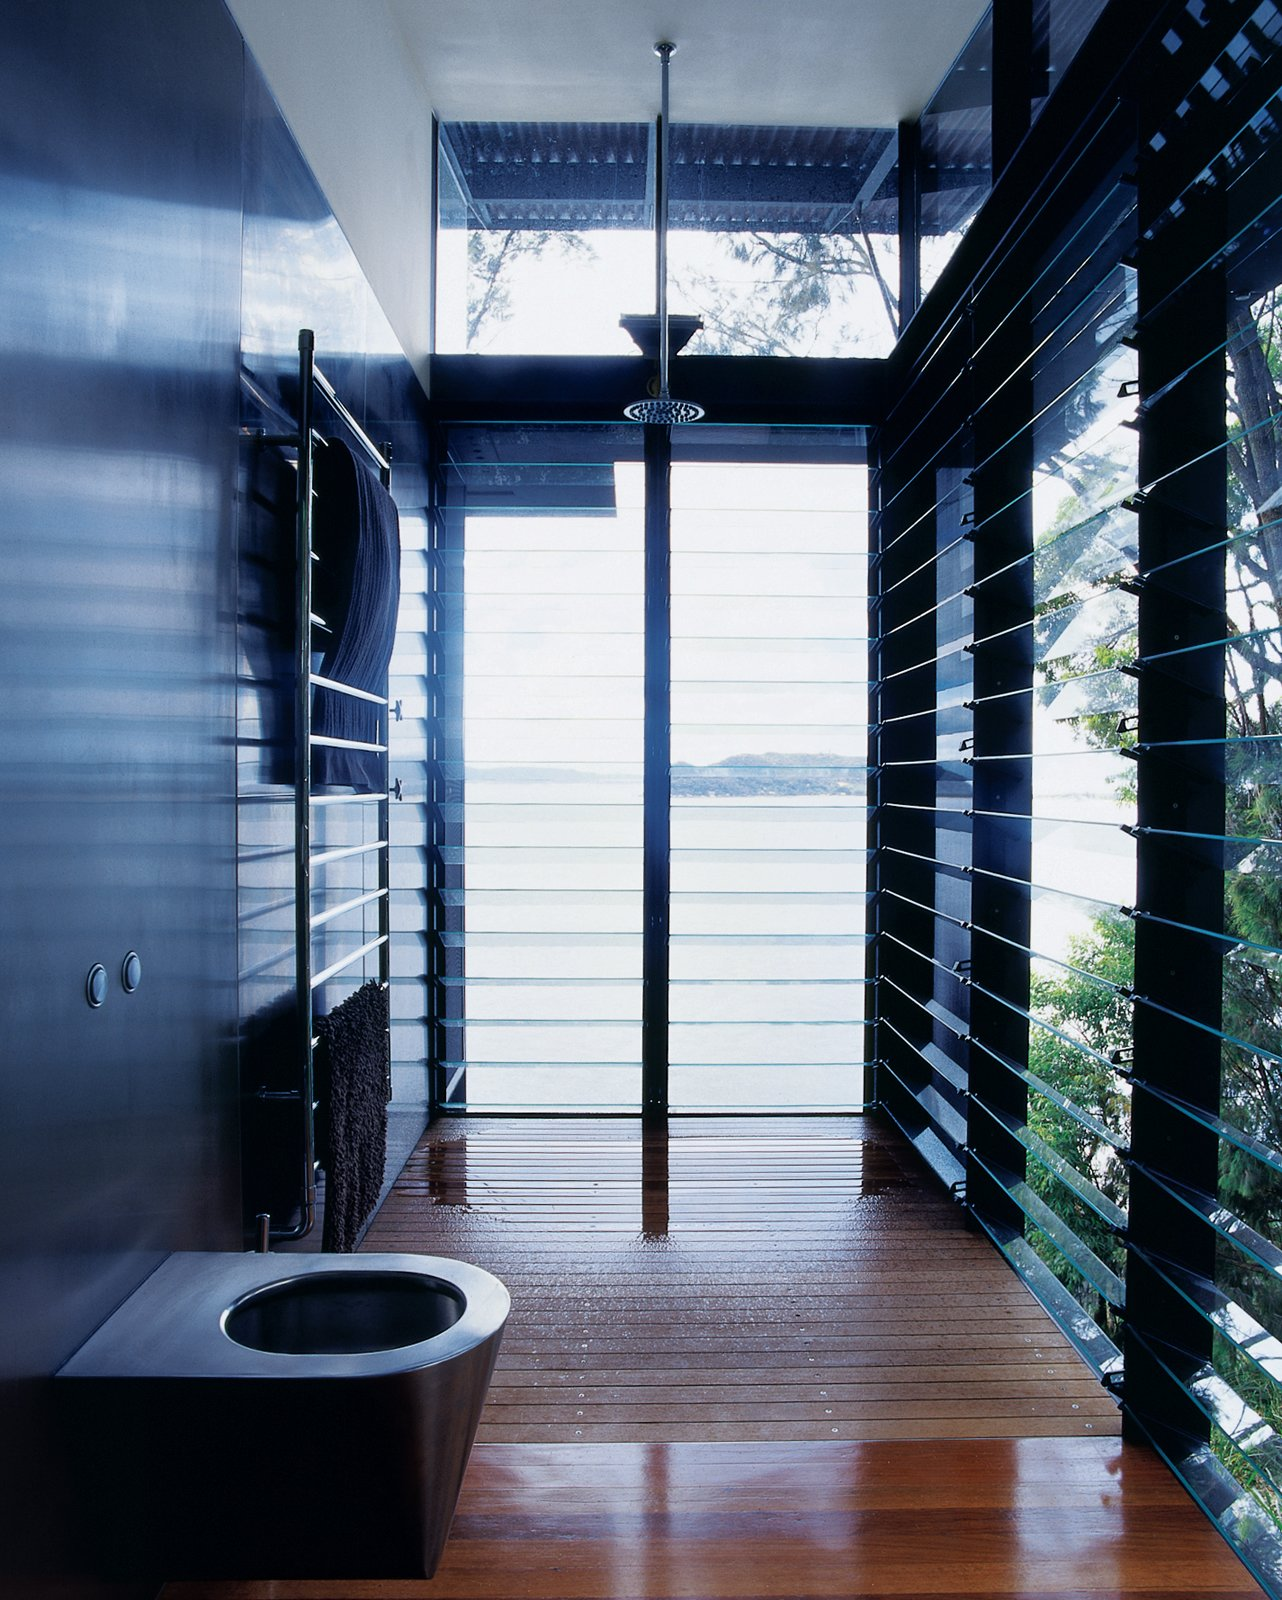 Bath Room, Medium Hardwood Floor, and Open Shower Even the master bath is open to the surrounding water.  Best Photos from Three Glass-and-Copper Pavilions Conquer the Cliffs